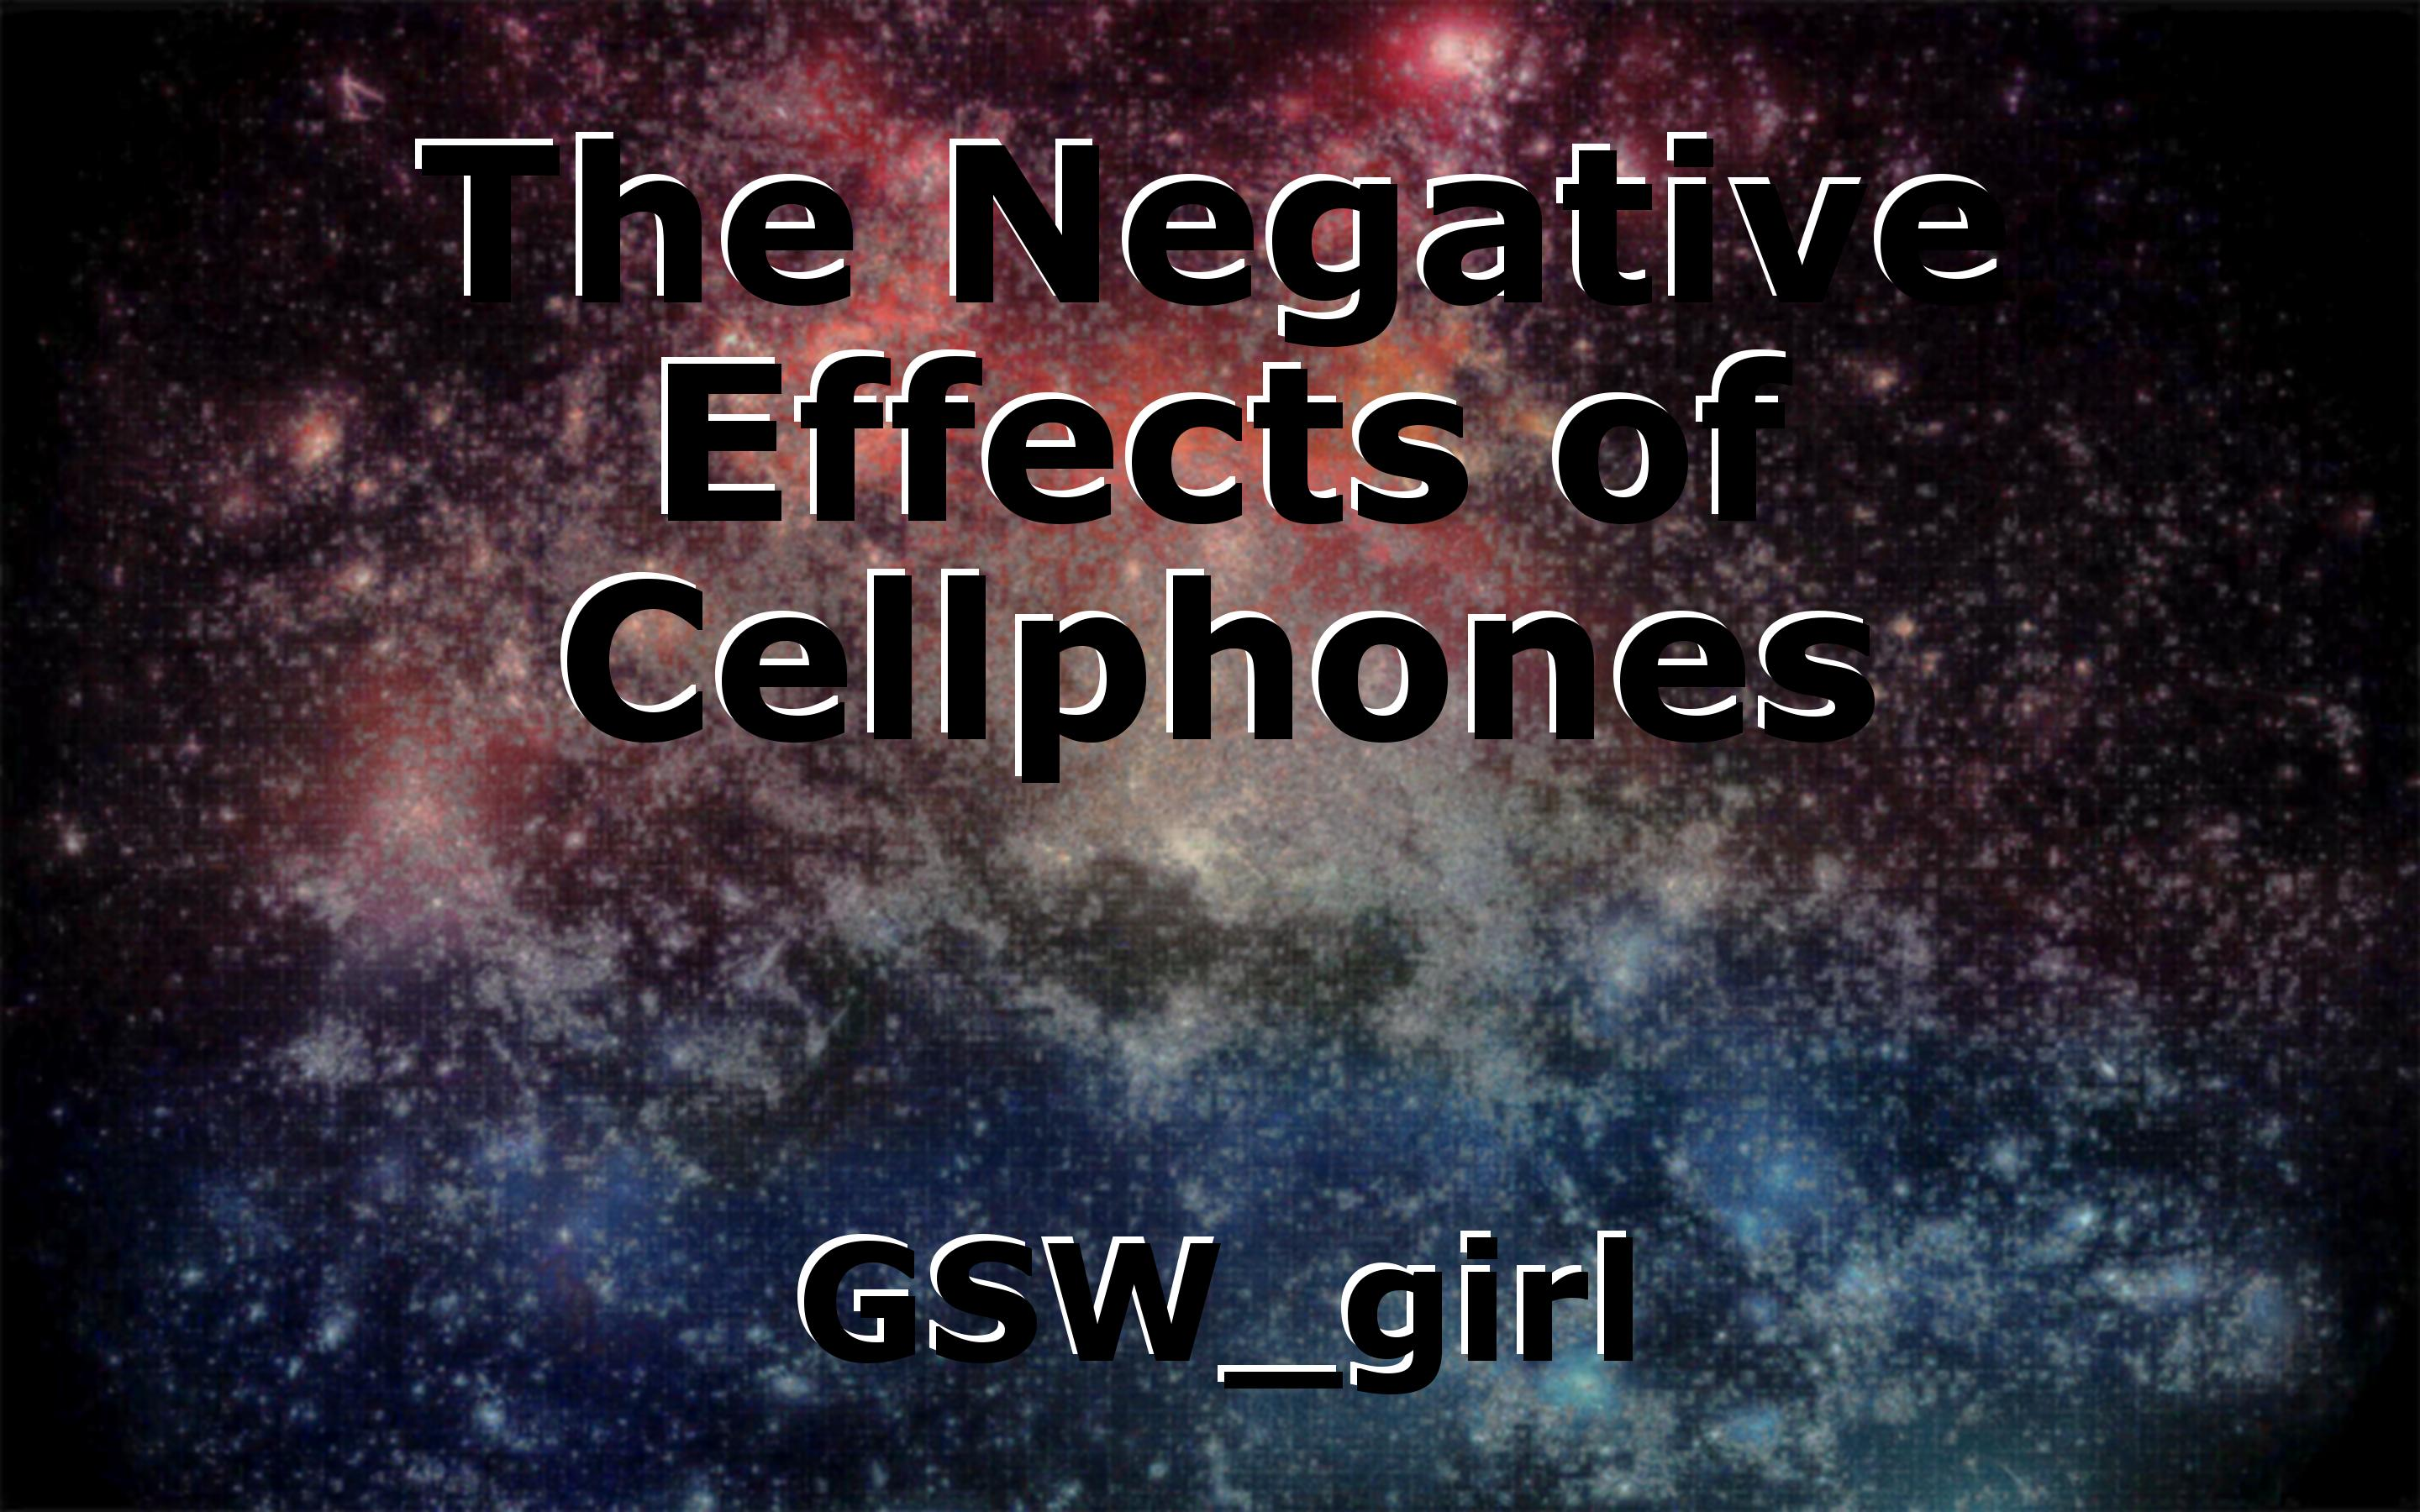 essay on negative effects of cell phones